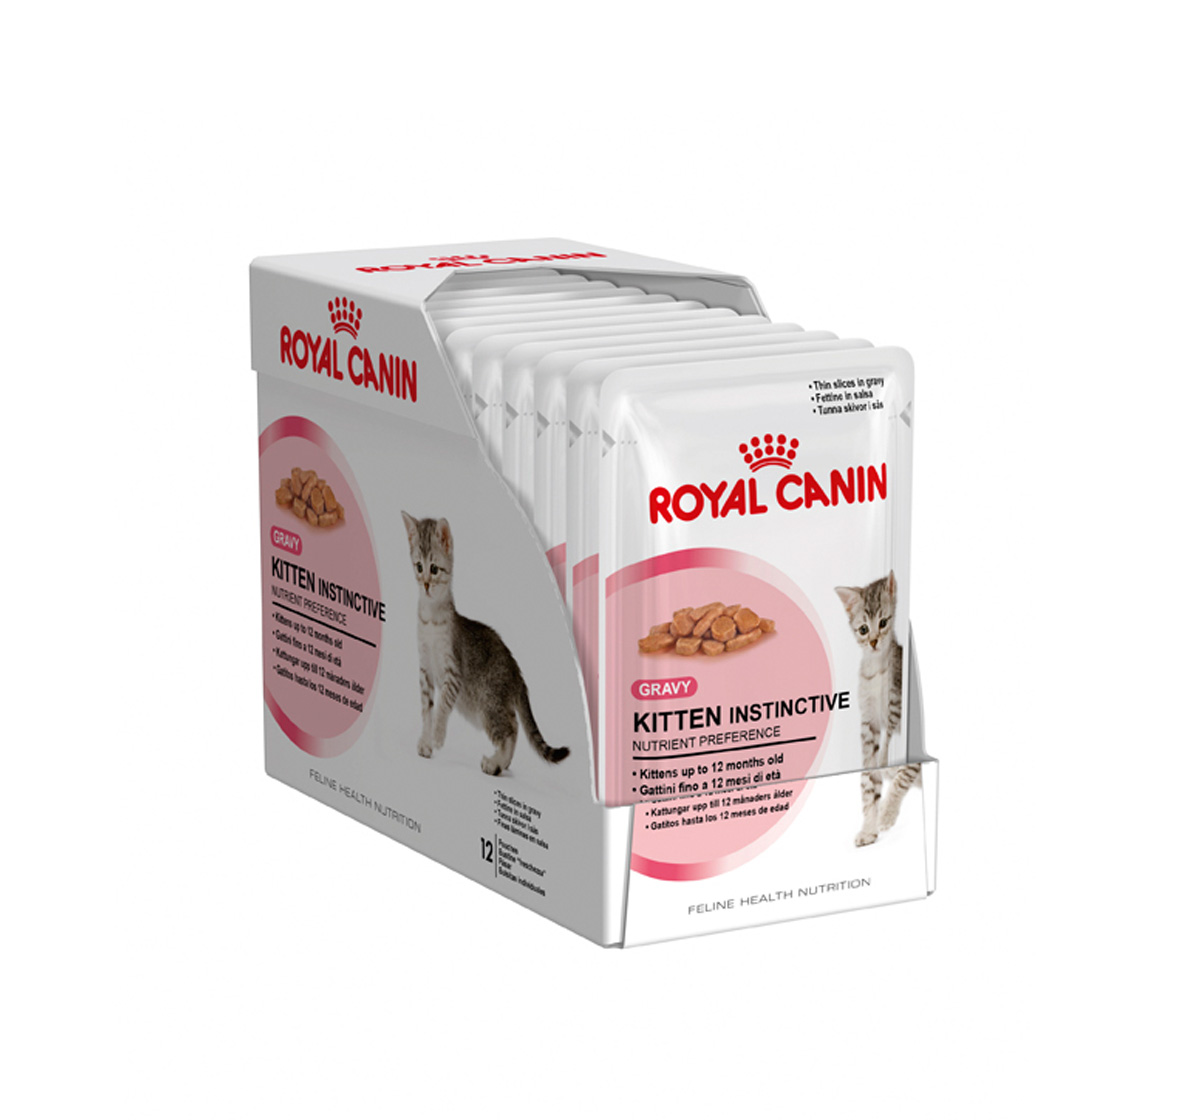 Royal Canin Kitten Instinctive - 1.02 Kg